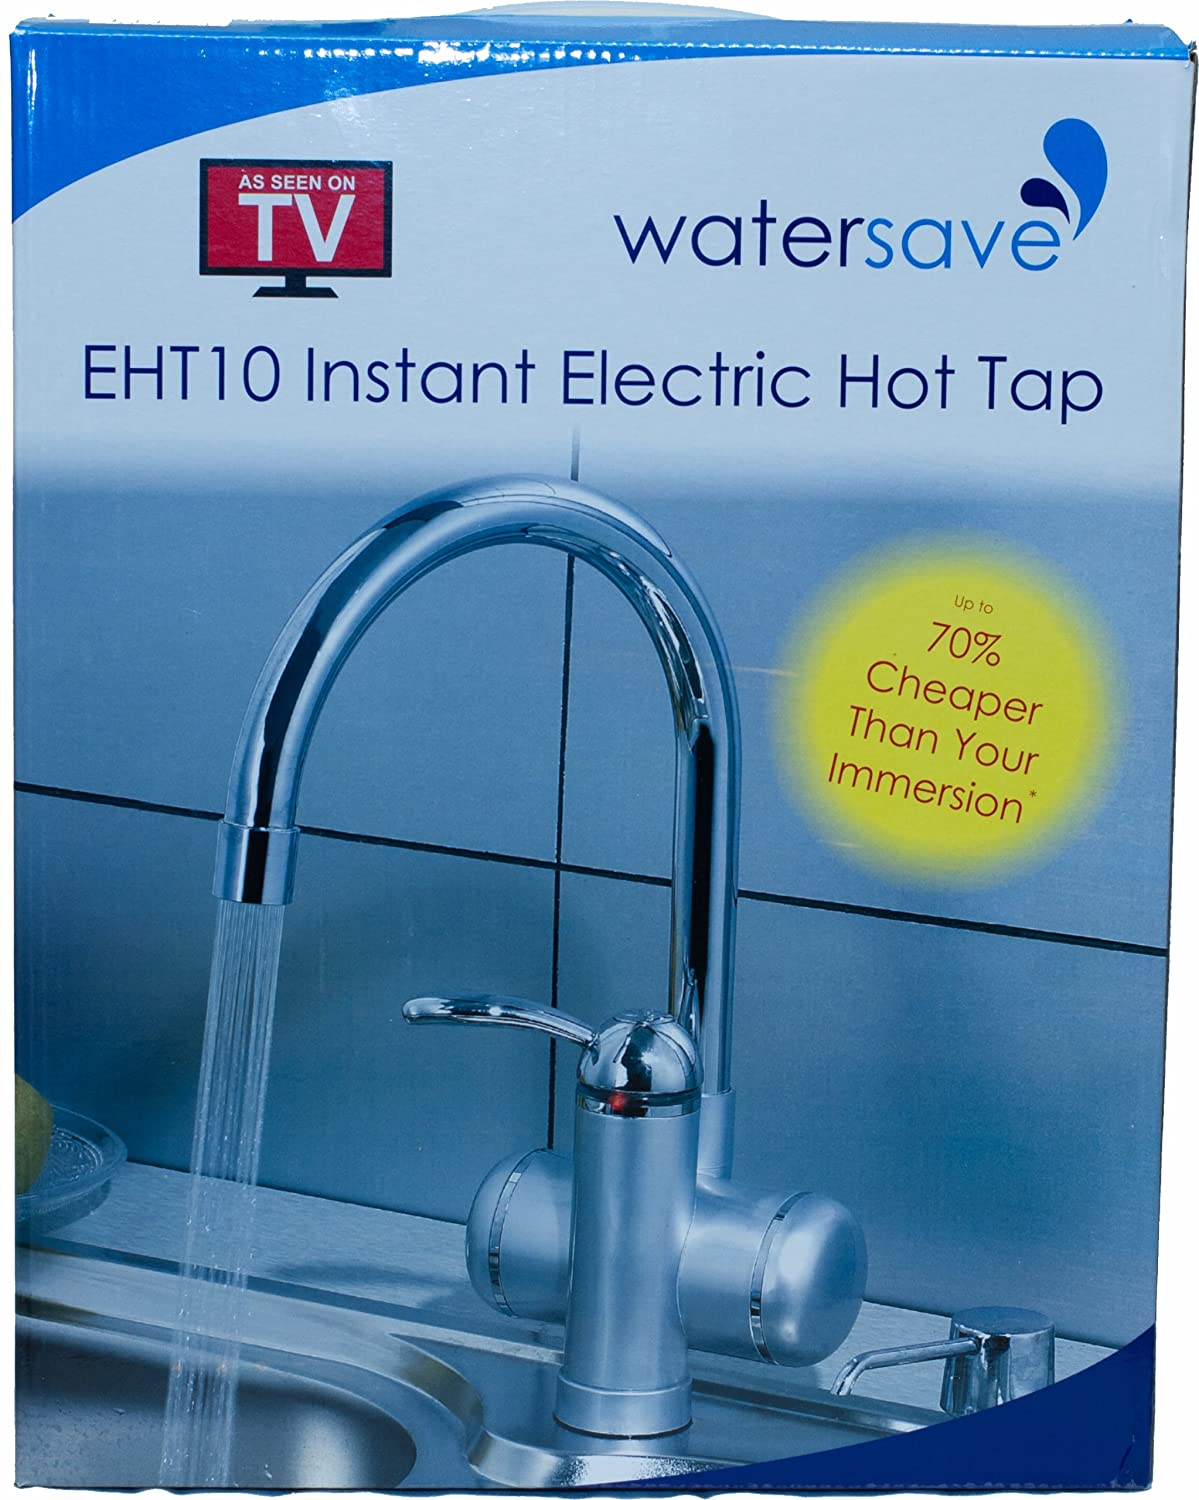 Watersave EHT10 Electric Hot Water Tap: Amazon.co.uk: Kitchen & Home